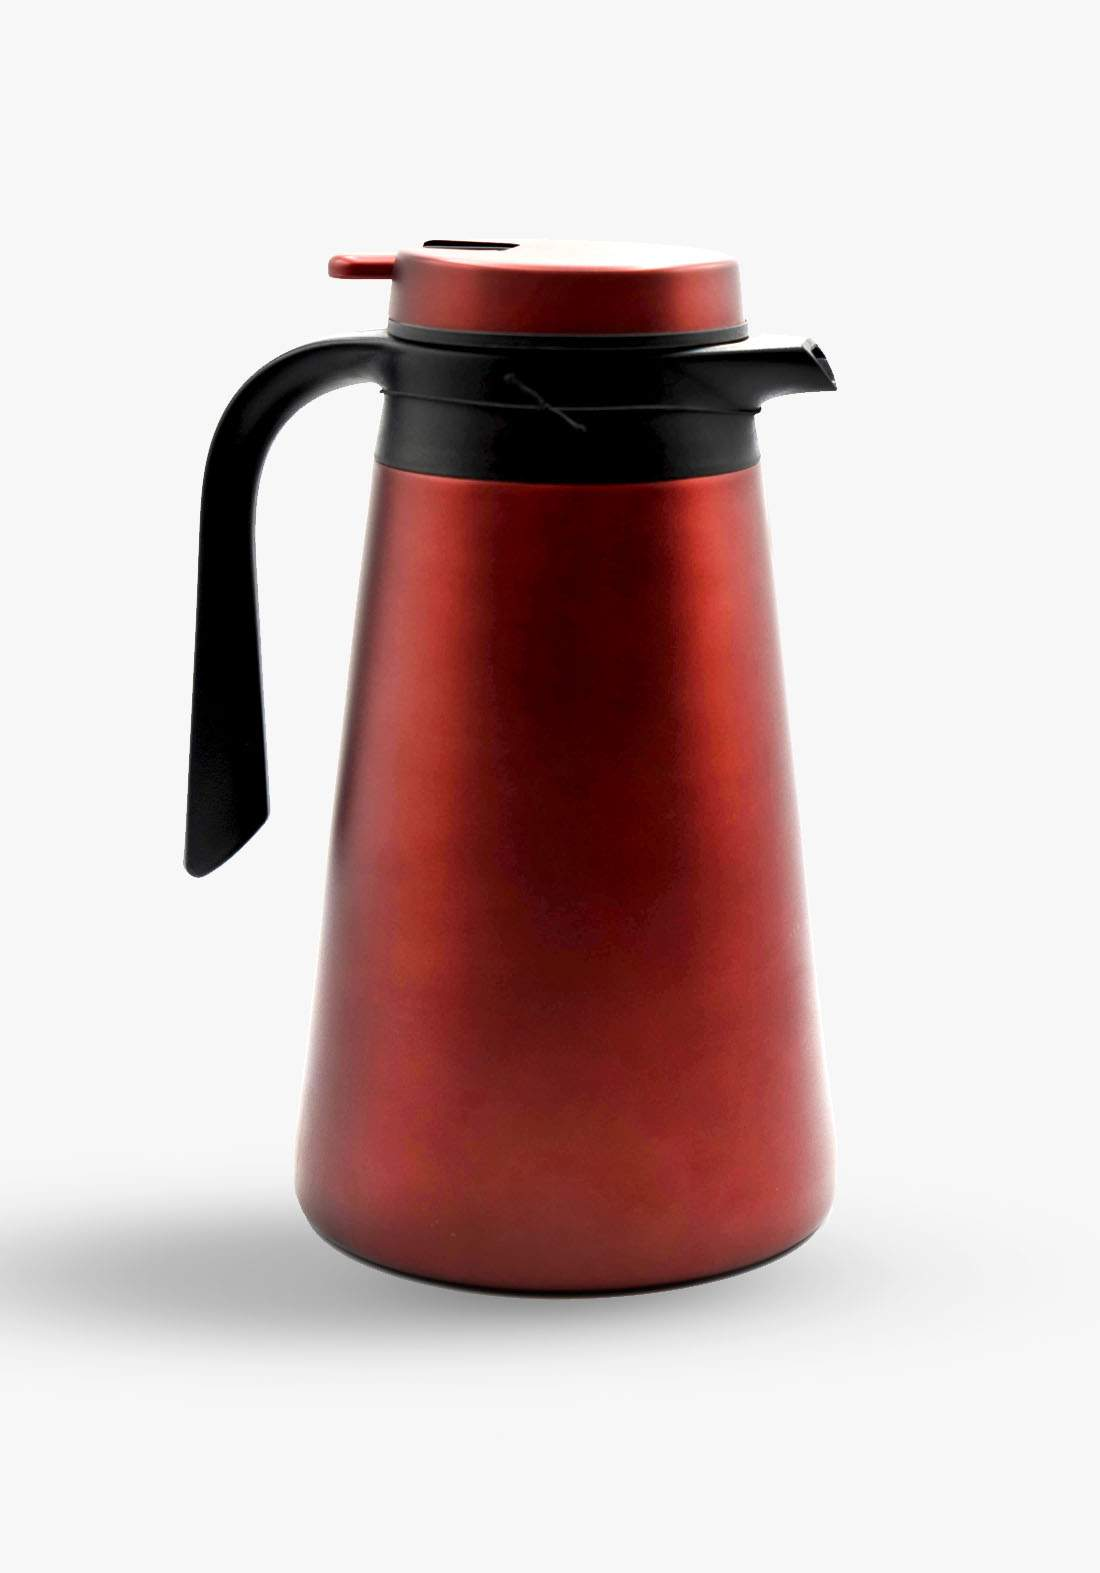 Stainless Steel Thermos Bottle 1L ترمز حراري مقاوم للصدأ